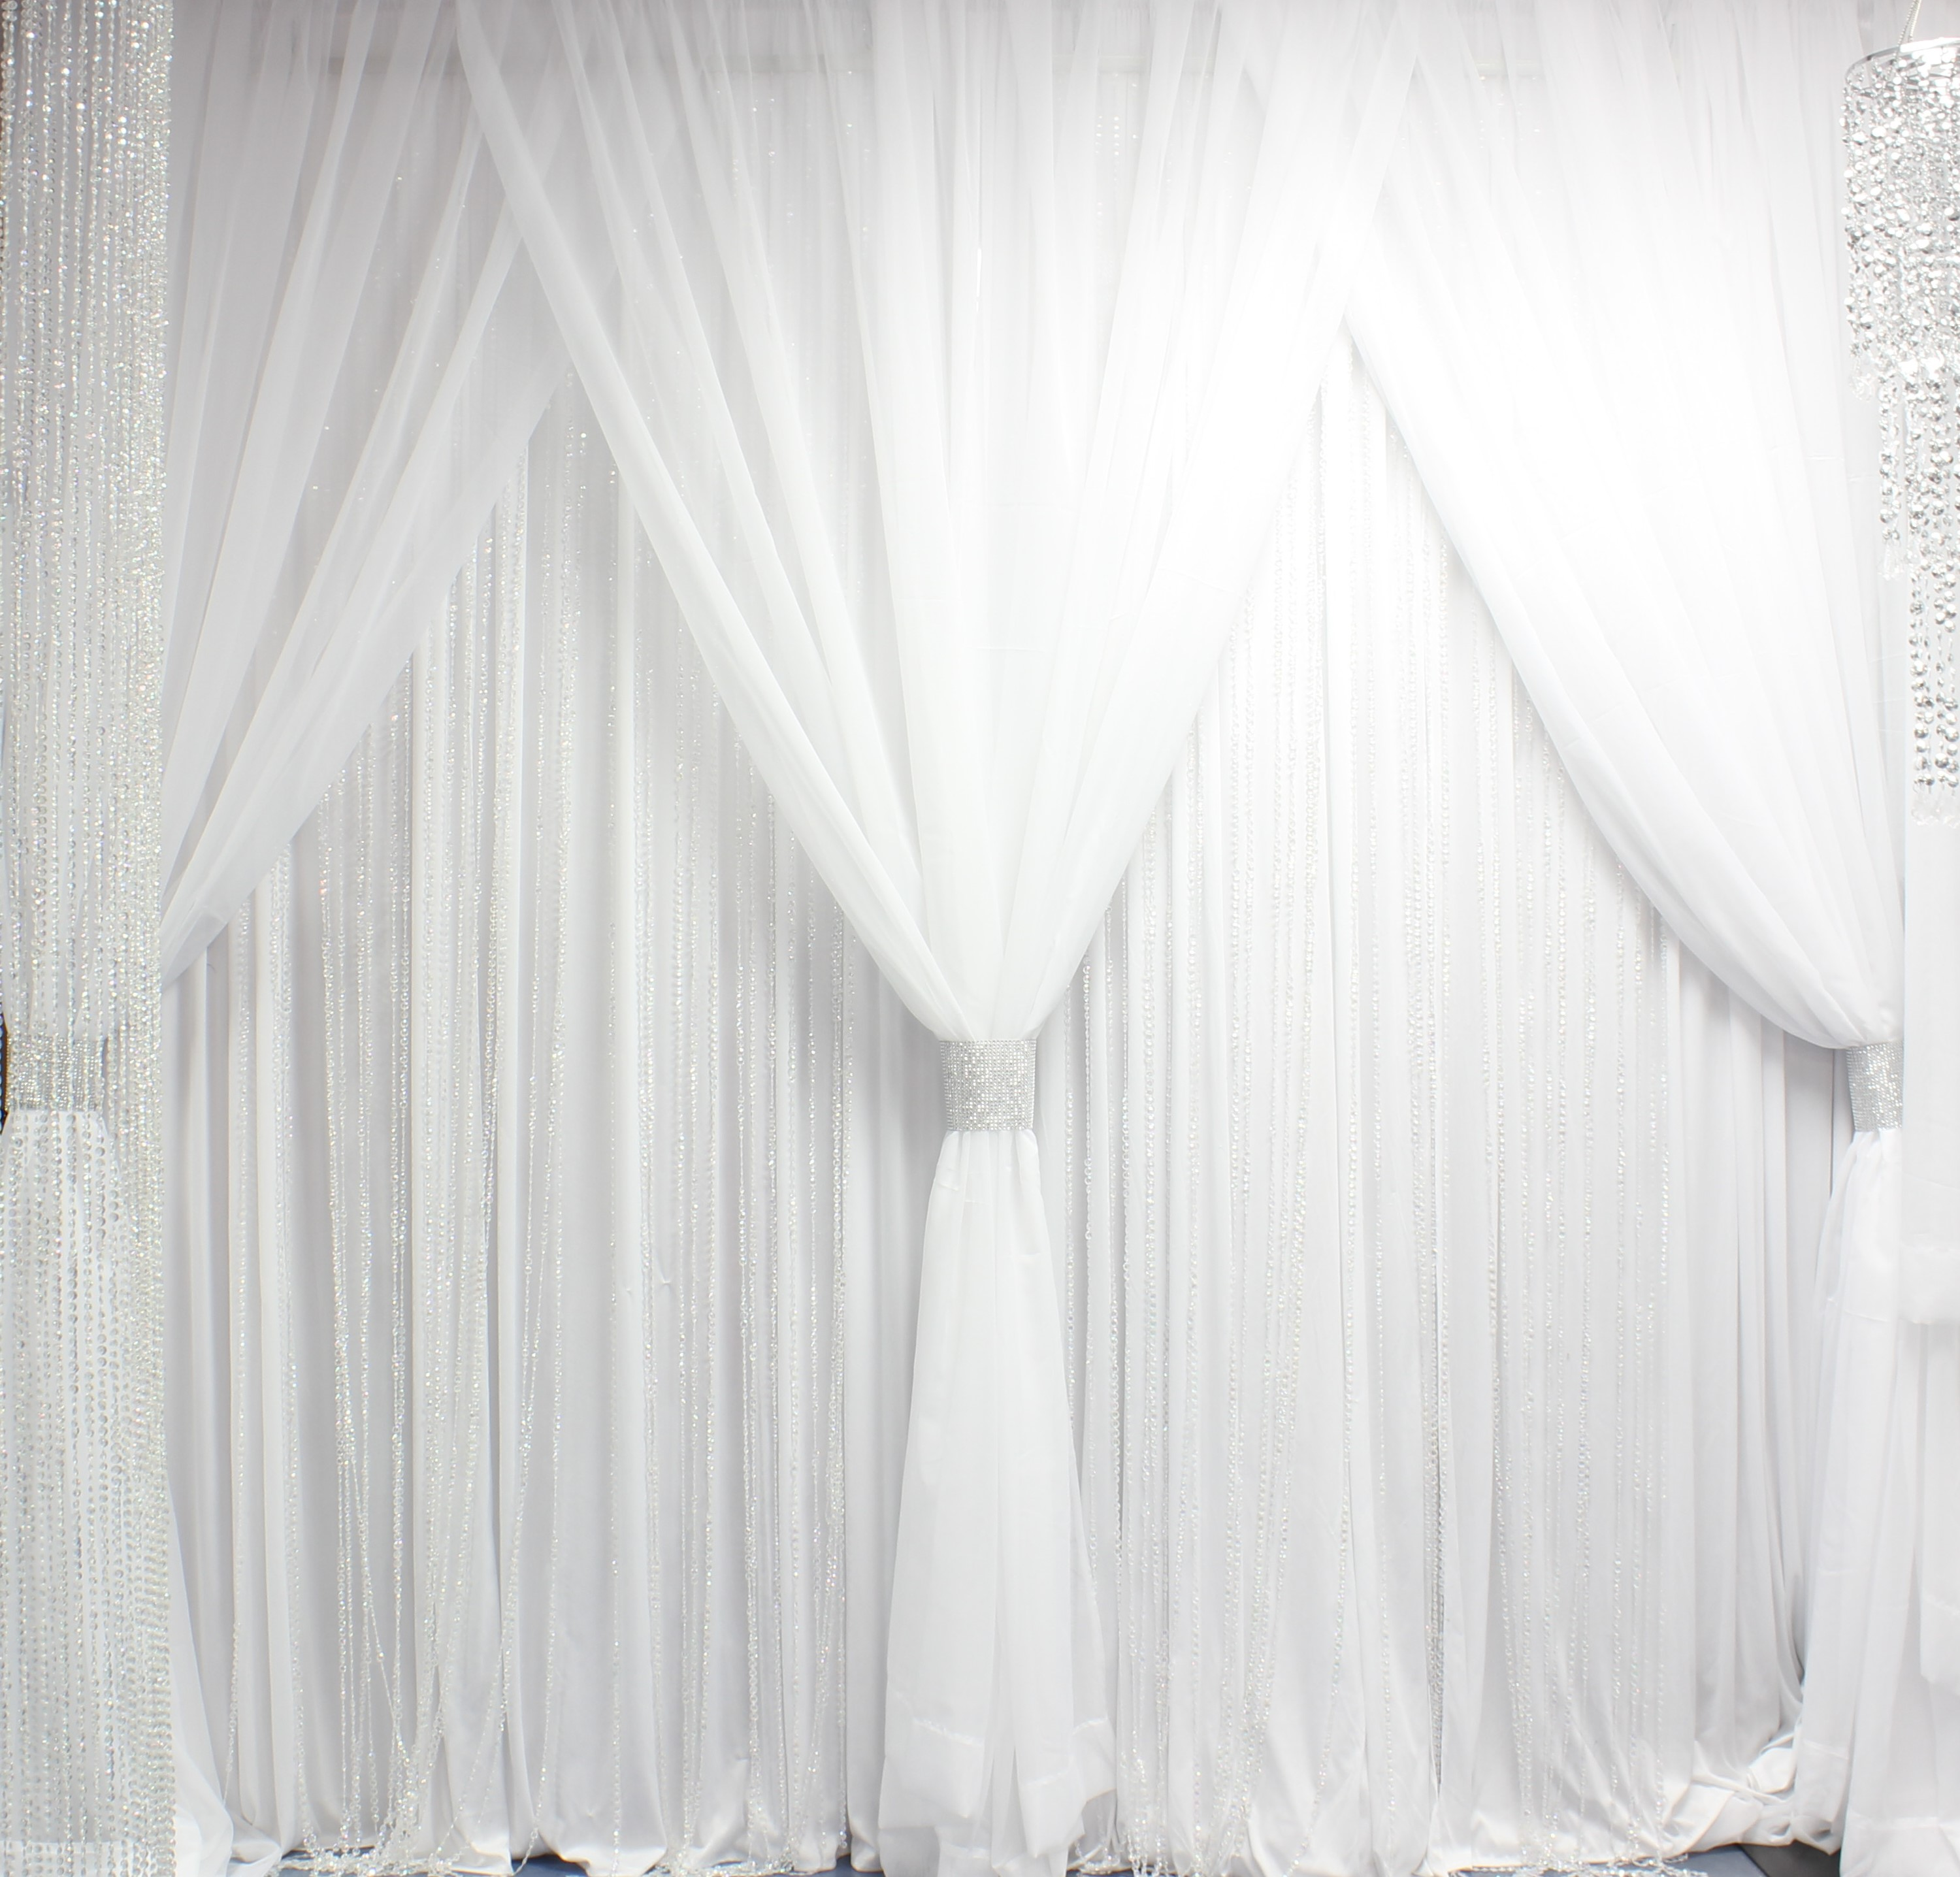 Captivating Curtains Picture On White Curtain Backdrop With Background Curtains